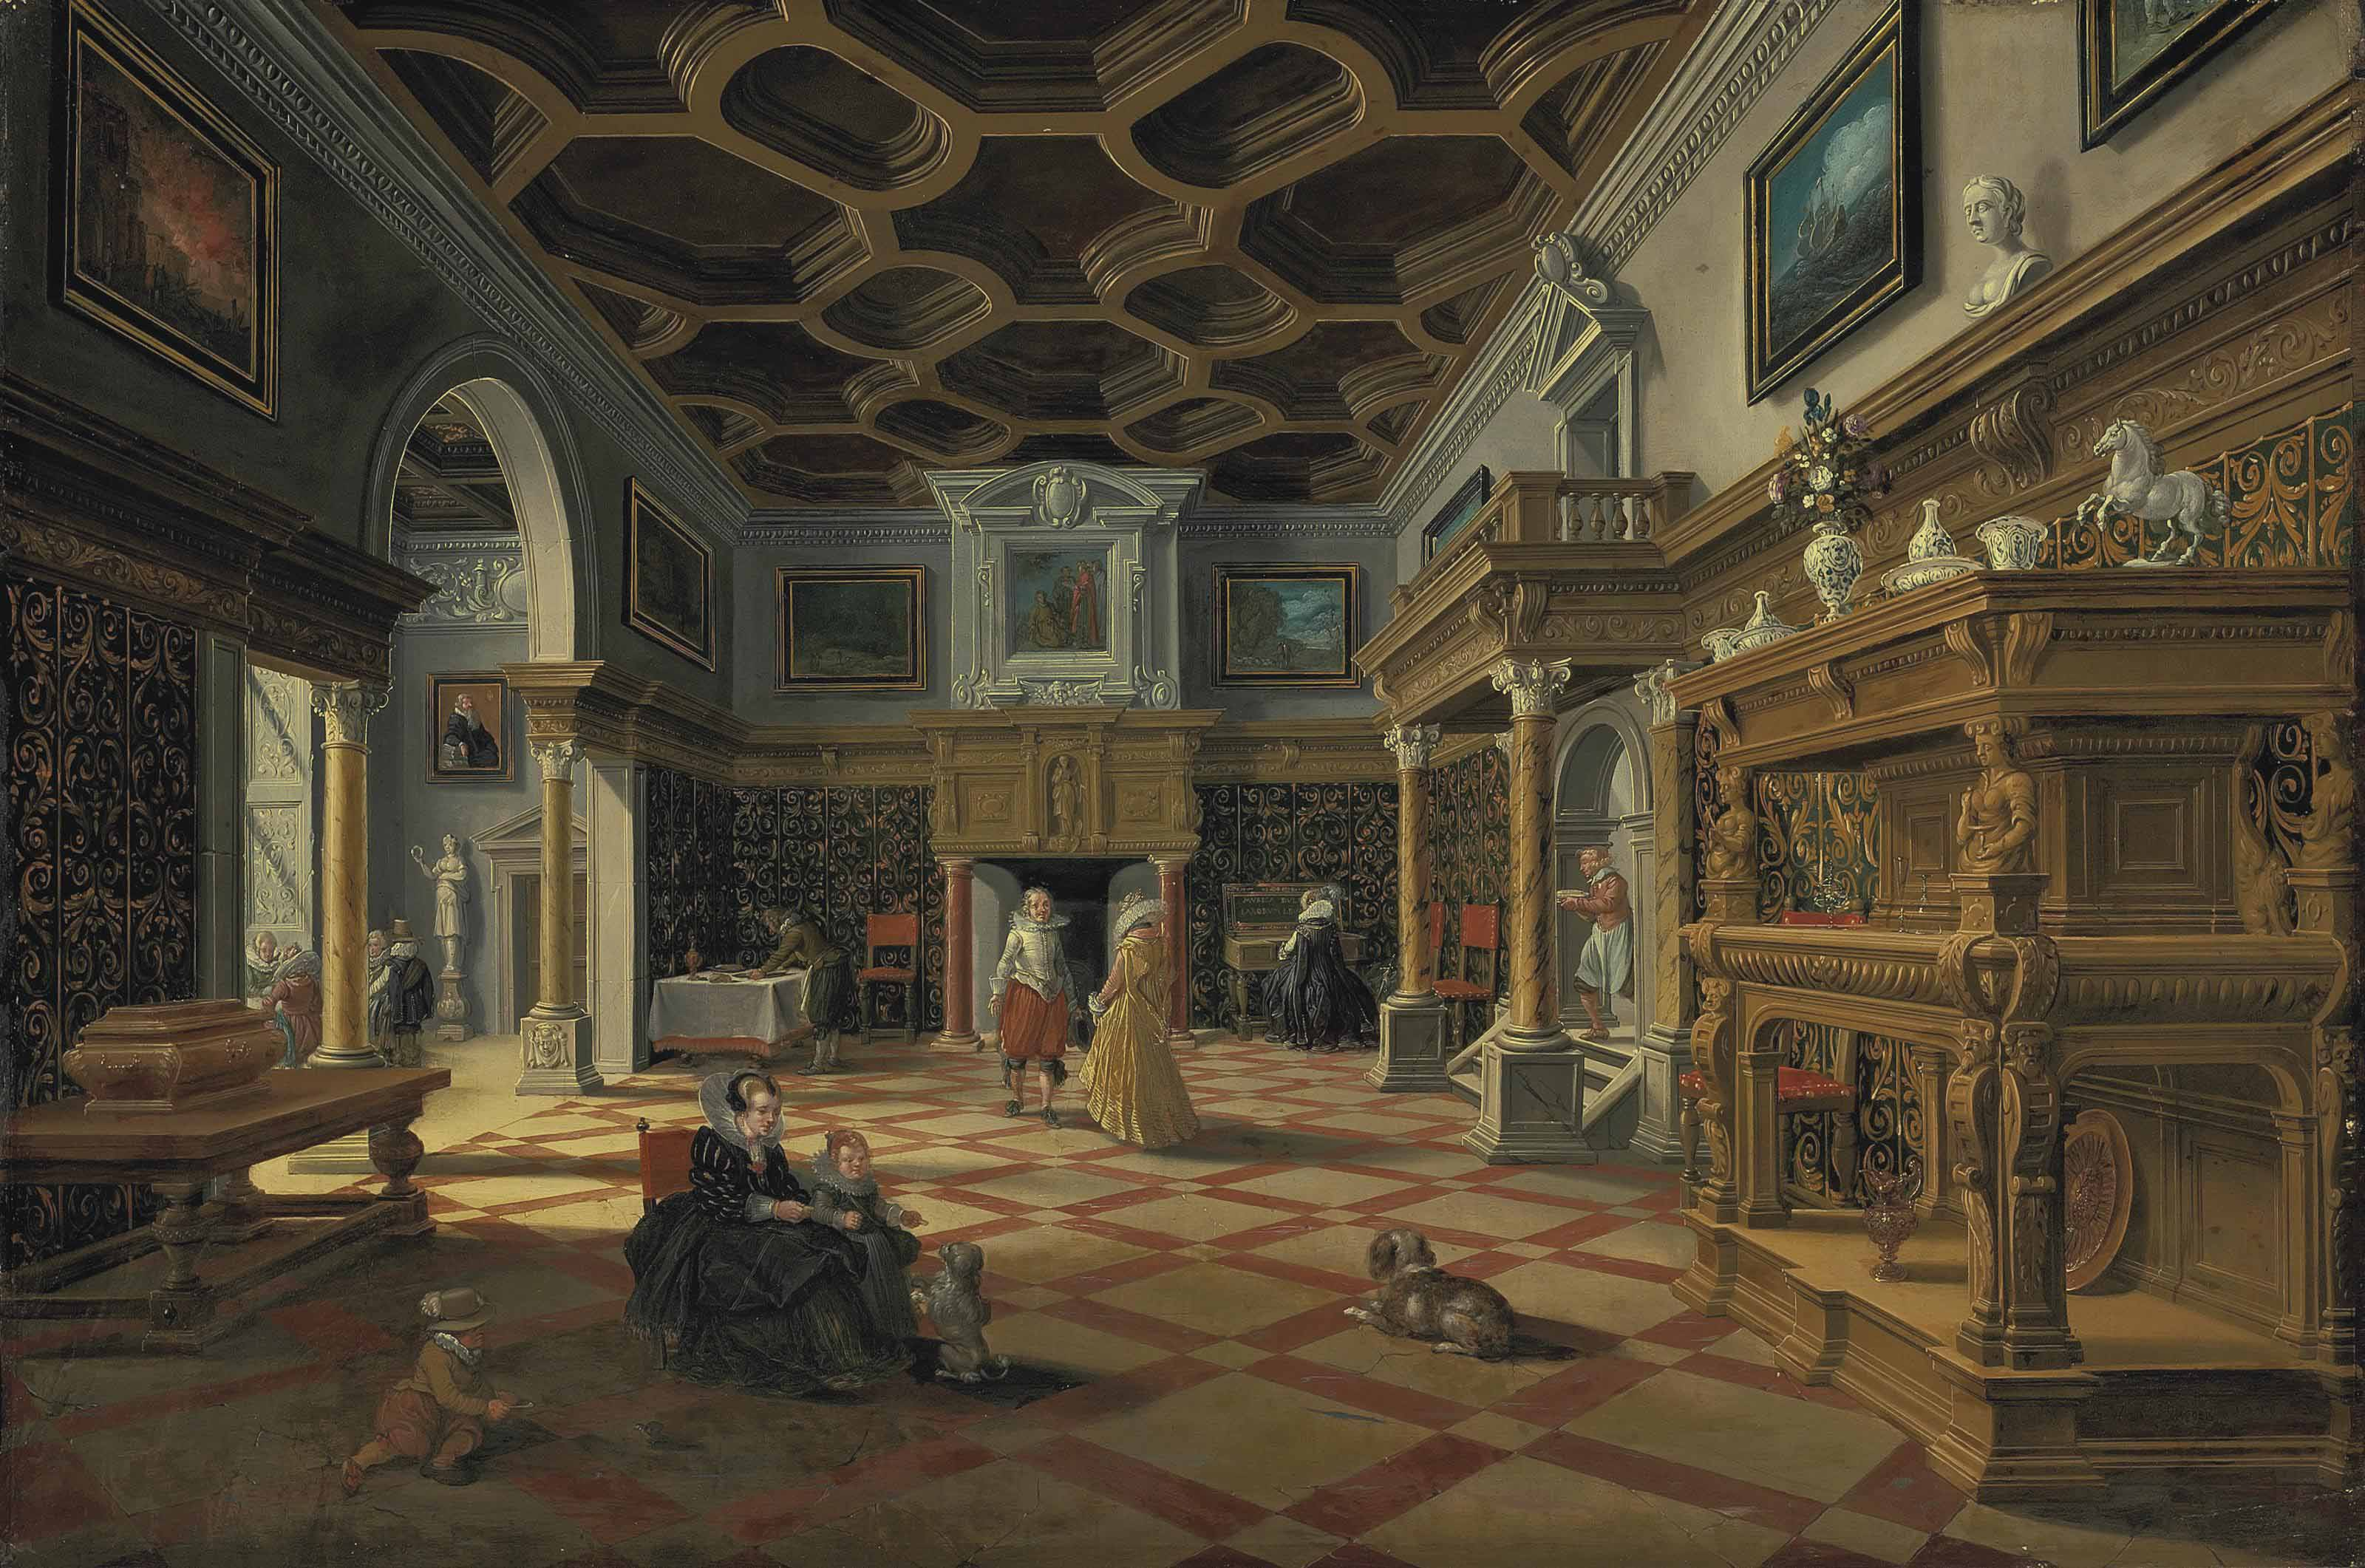 An interior with elegant figures conversing, a child playing with a dog and a woman playing a harpsichord